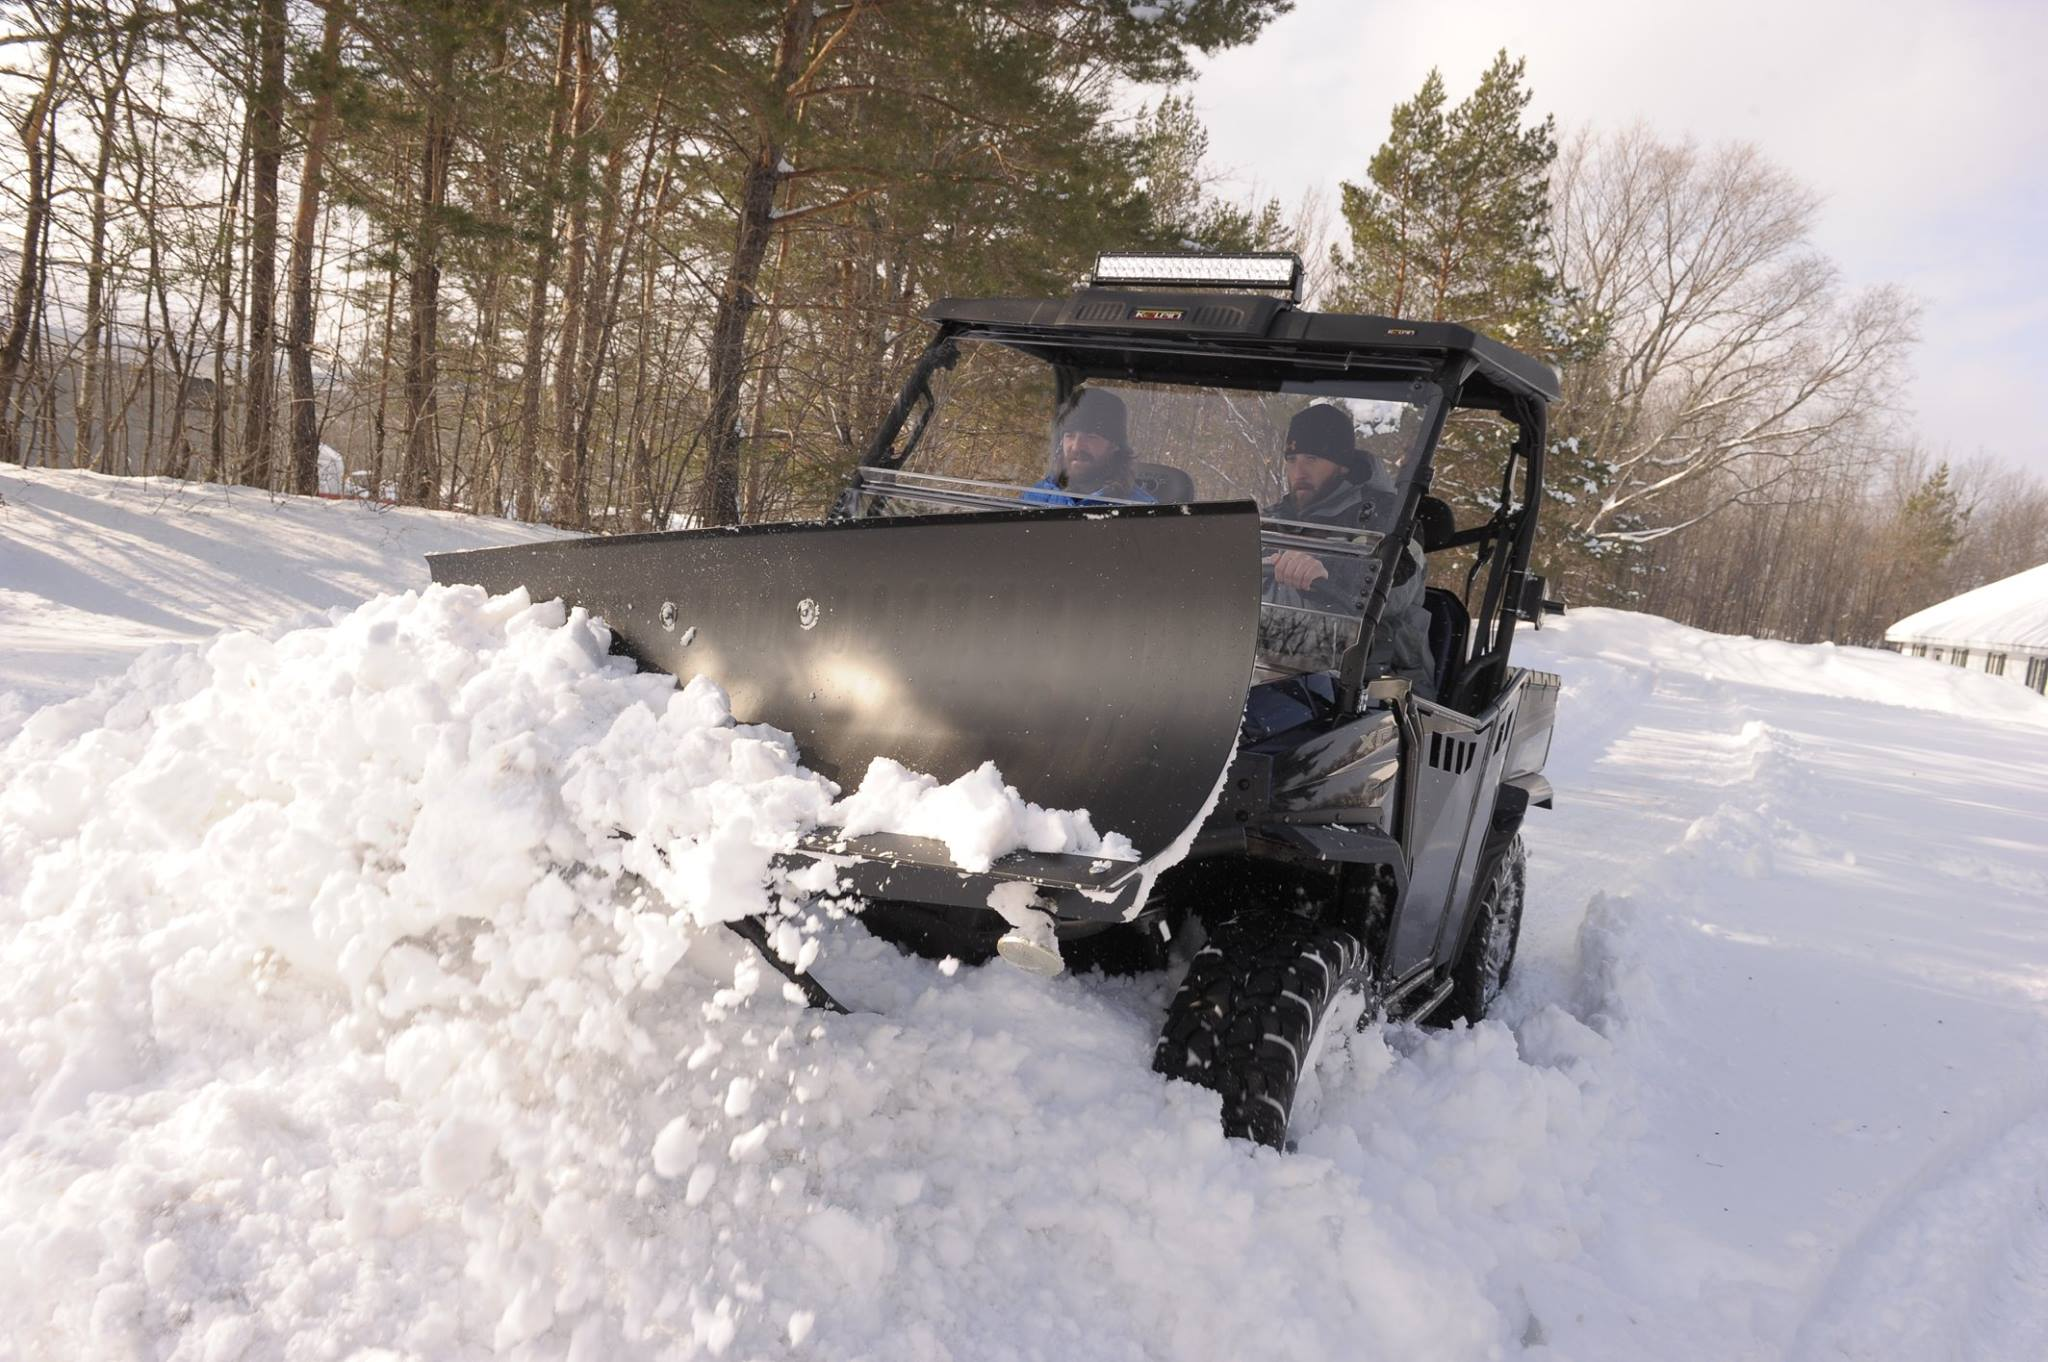 a side by side utv with a snowplow attachment